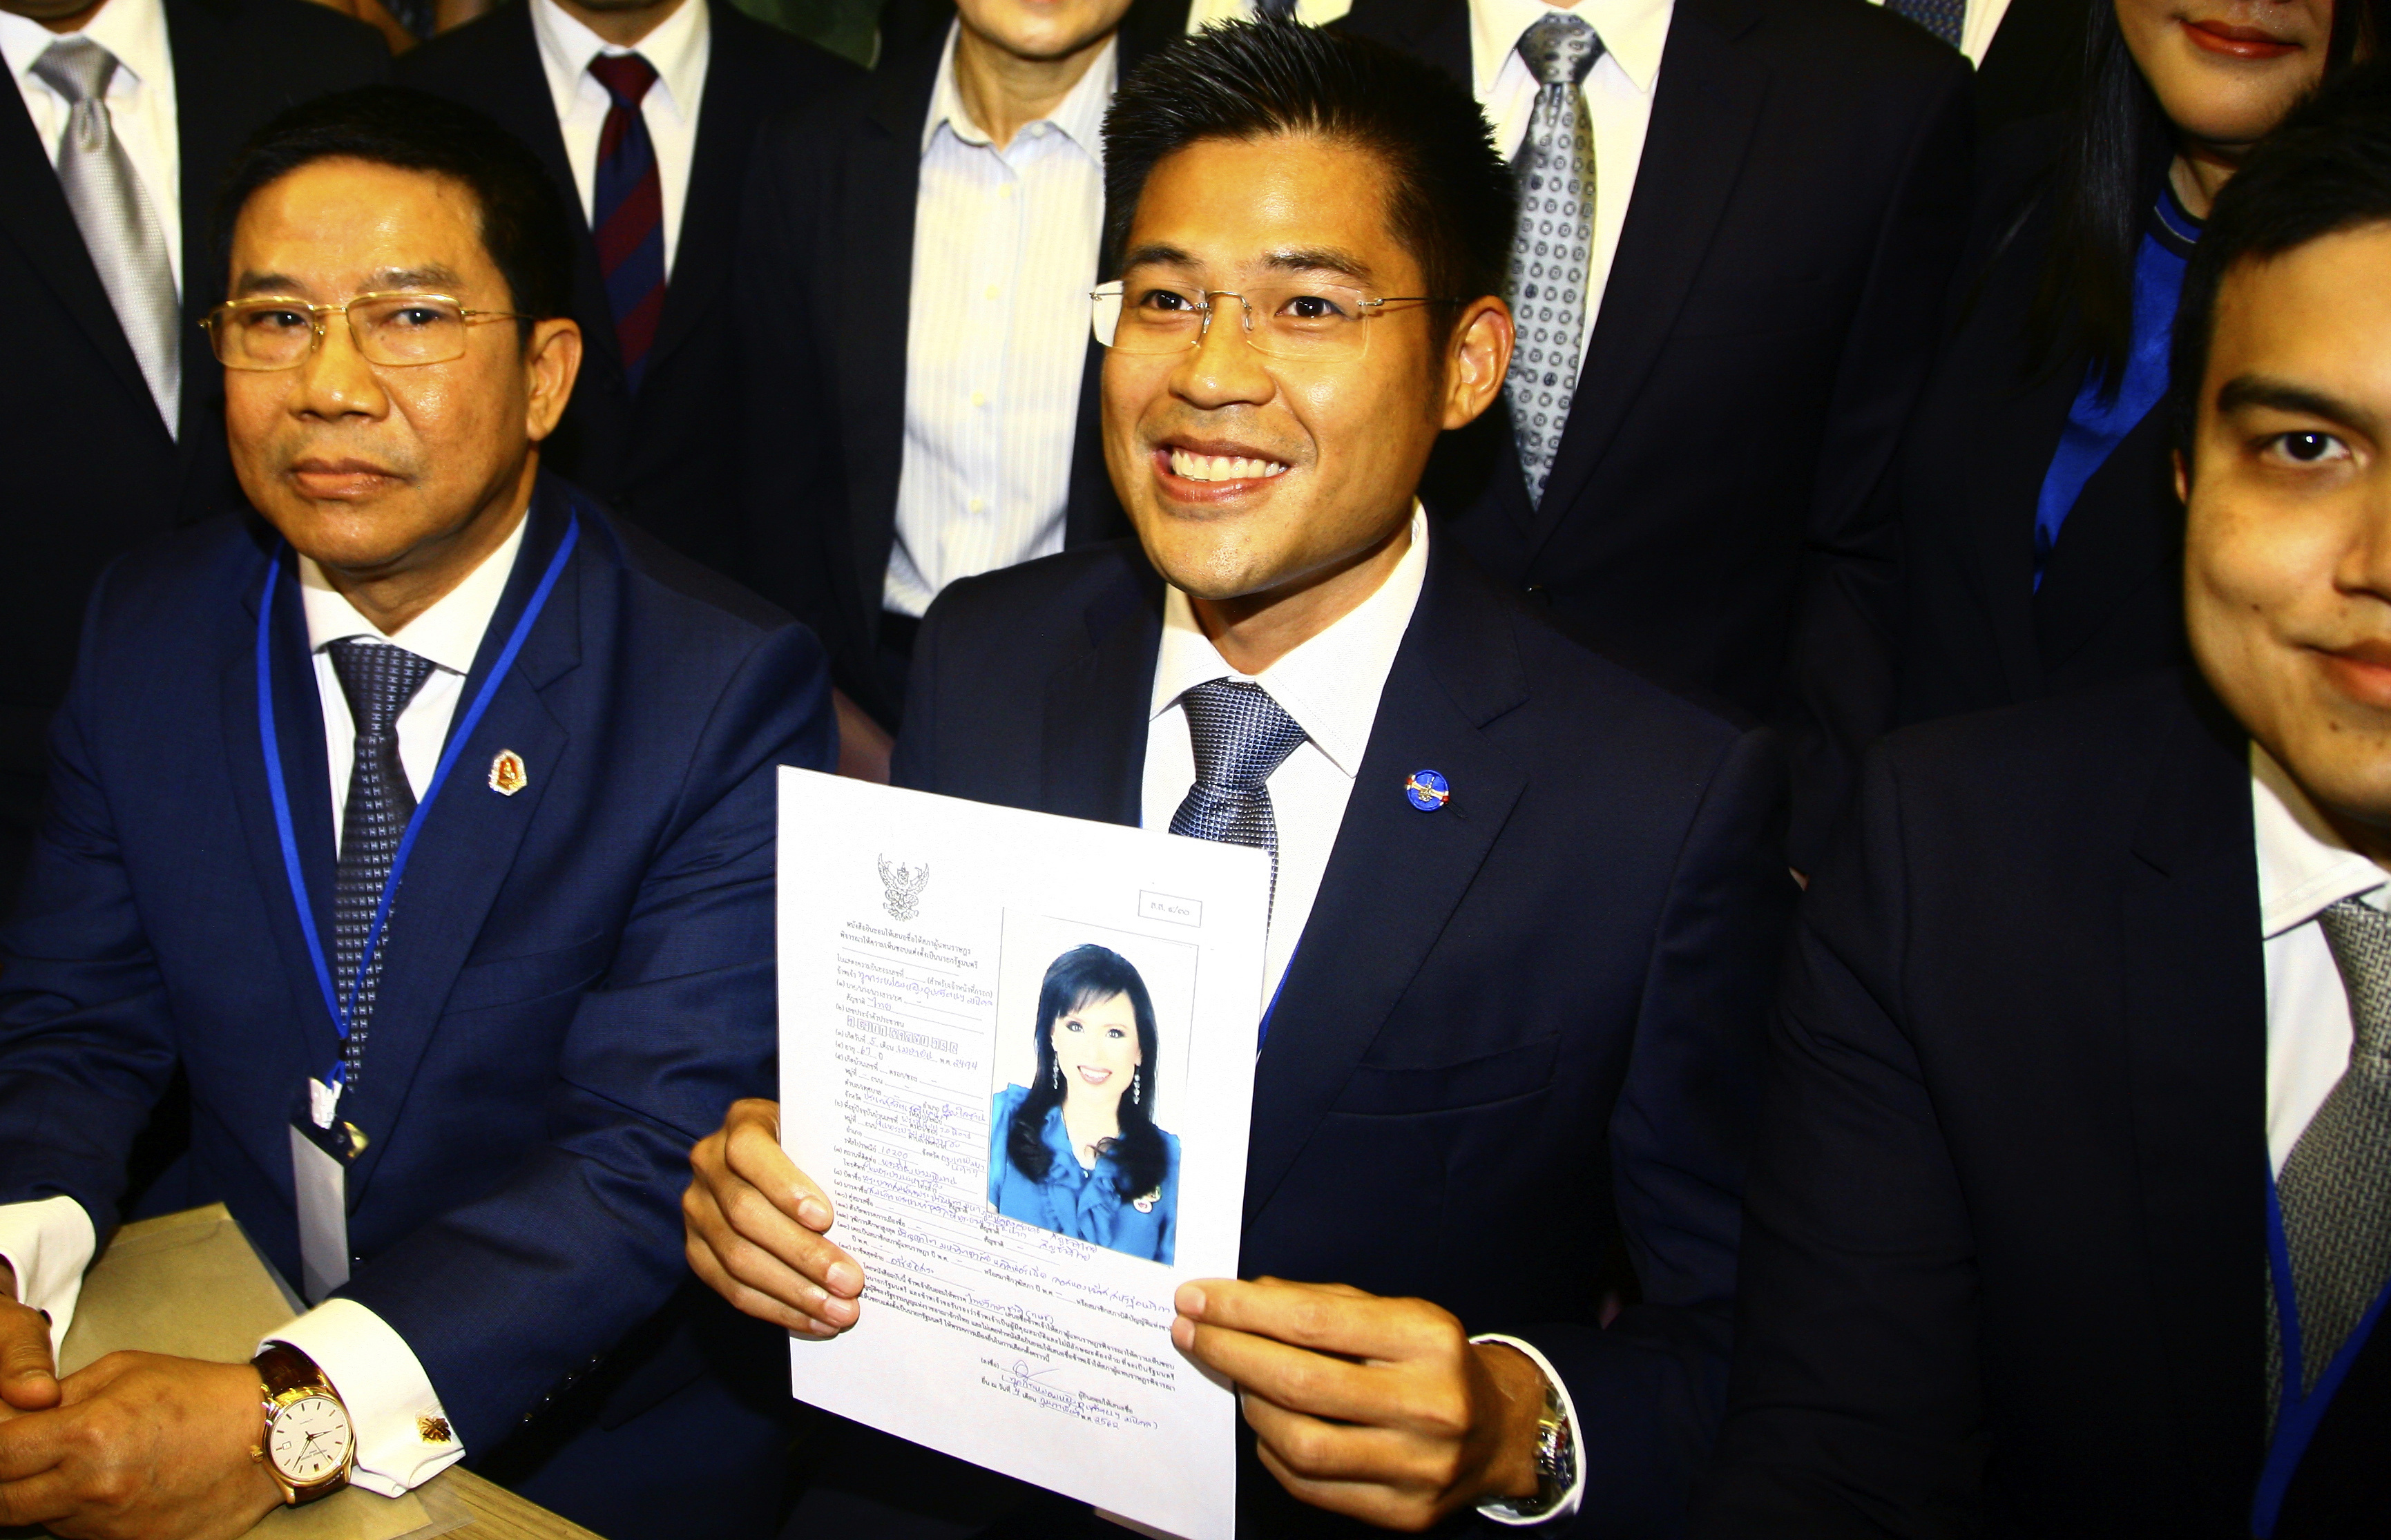 Leader of Thai Raksa Chart party Preecha Pholphongpanich, center, holds a picture of Princess Ubolratana at election commission of Thailand in Bangkok, Feb. 8, 2019. The political party has selected the princess as its nominee to serve as the next pr...